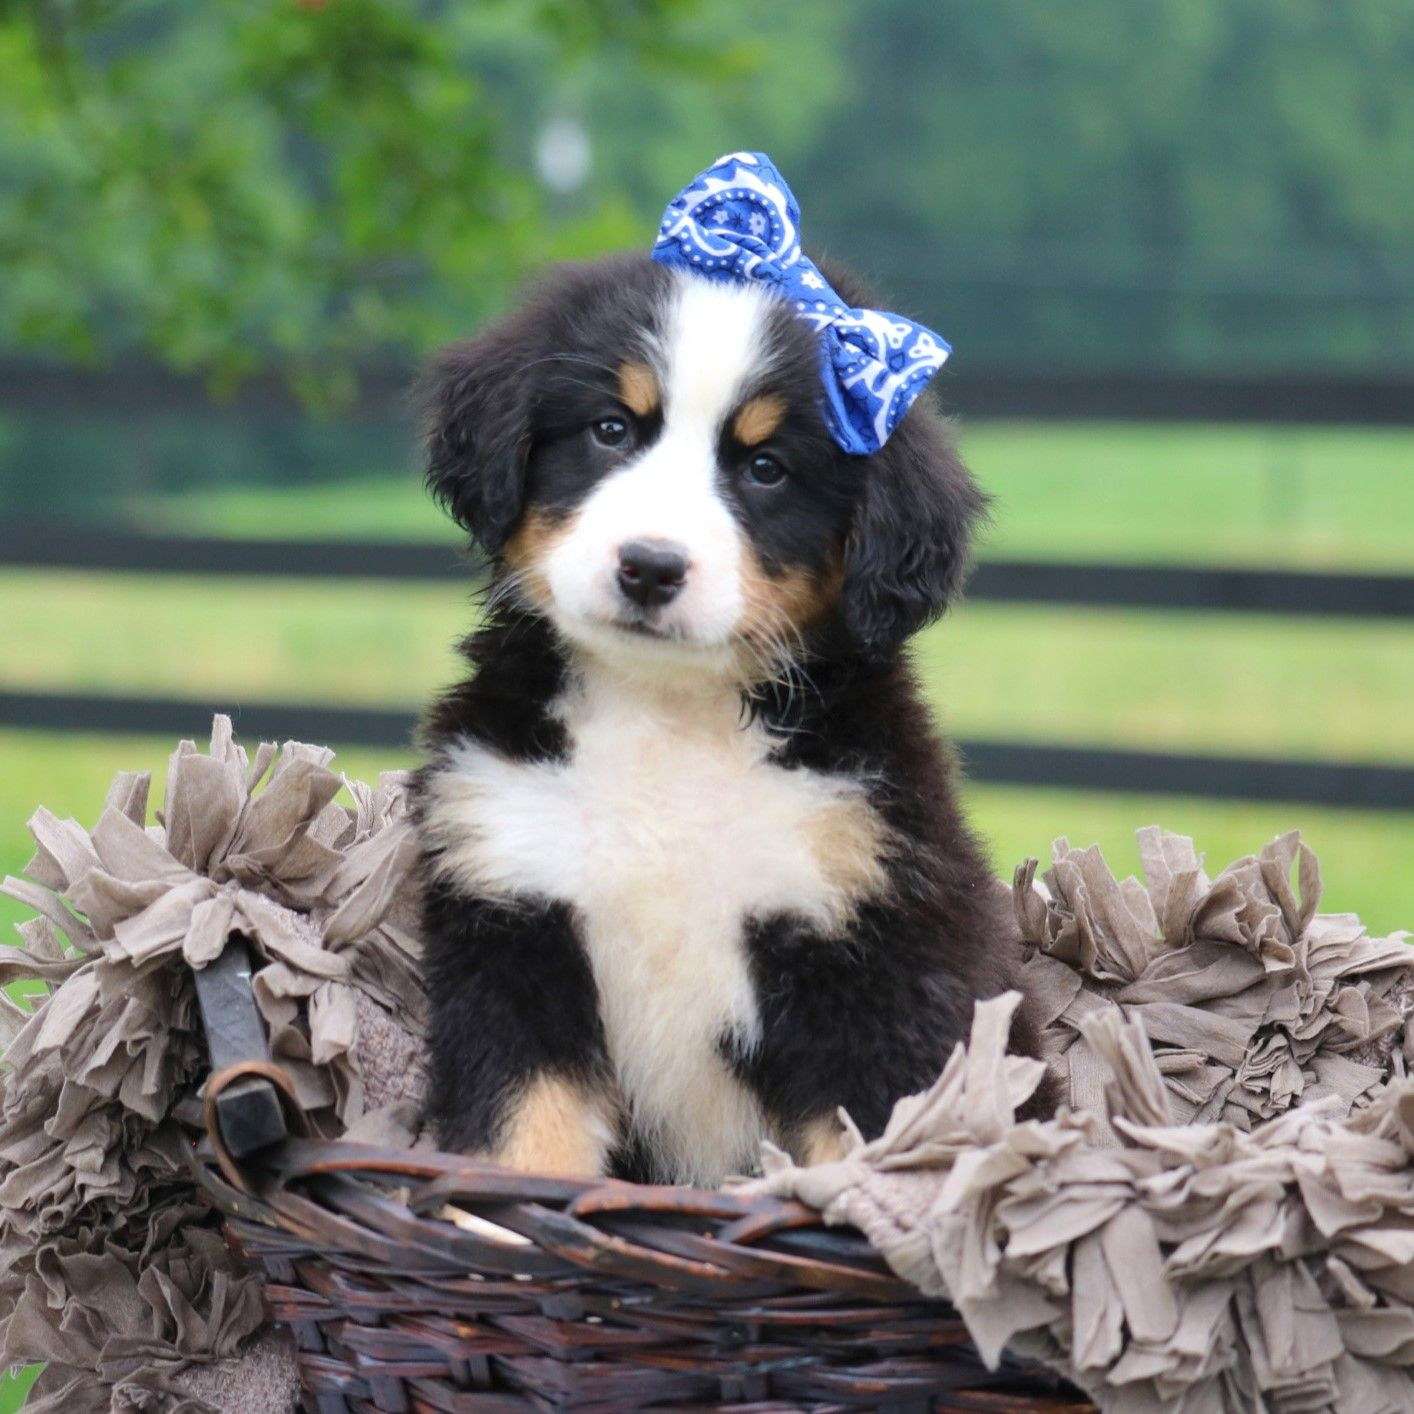 Meet Friendly Playful Loving Ohsocute Bernesemountaindog Hermione She Is An Awesome Berne Bernese Mountain Dog Puppy Bernese Mountain Dog Puppies